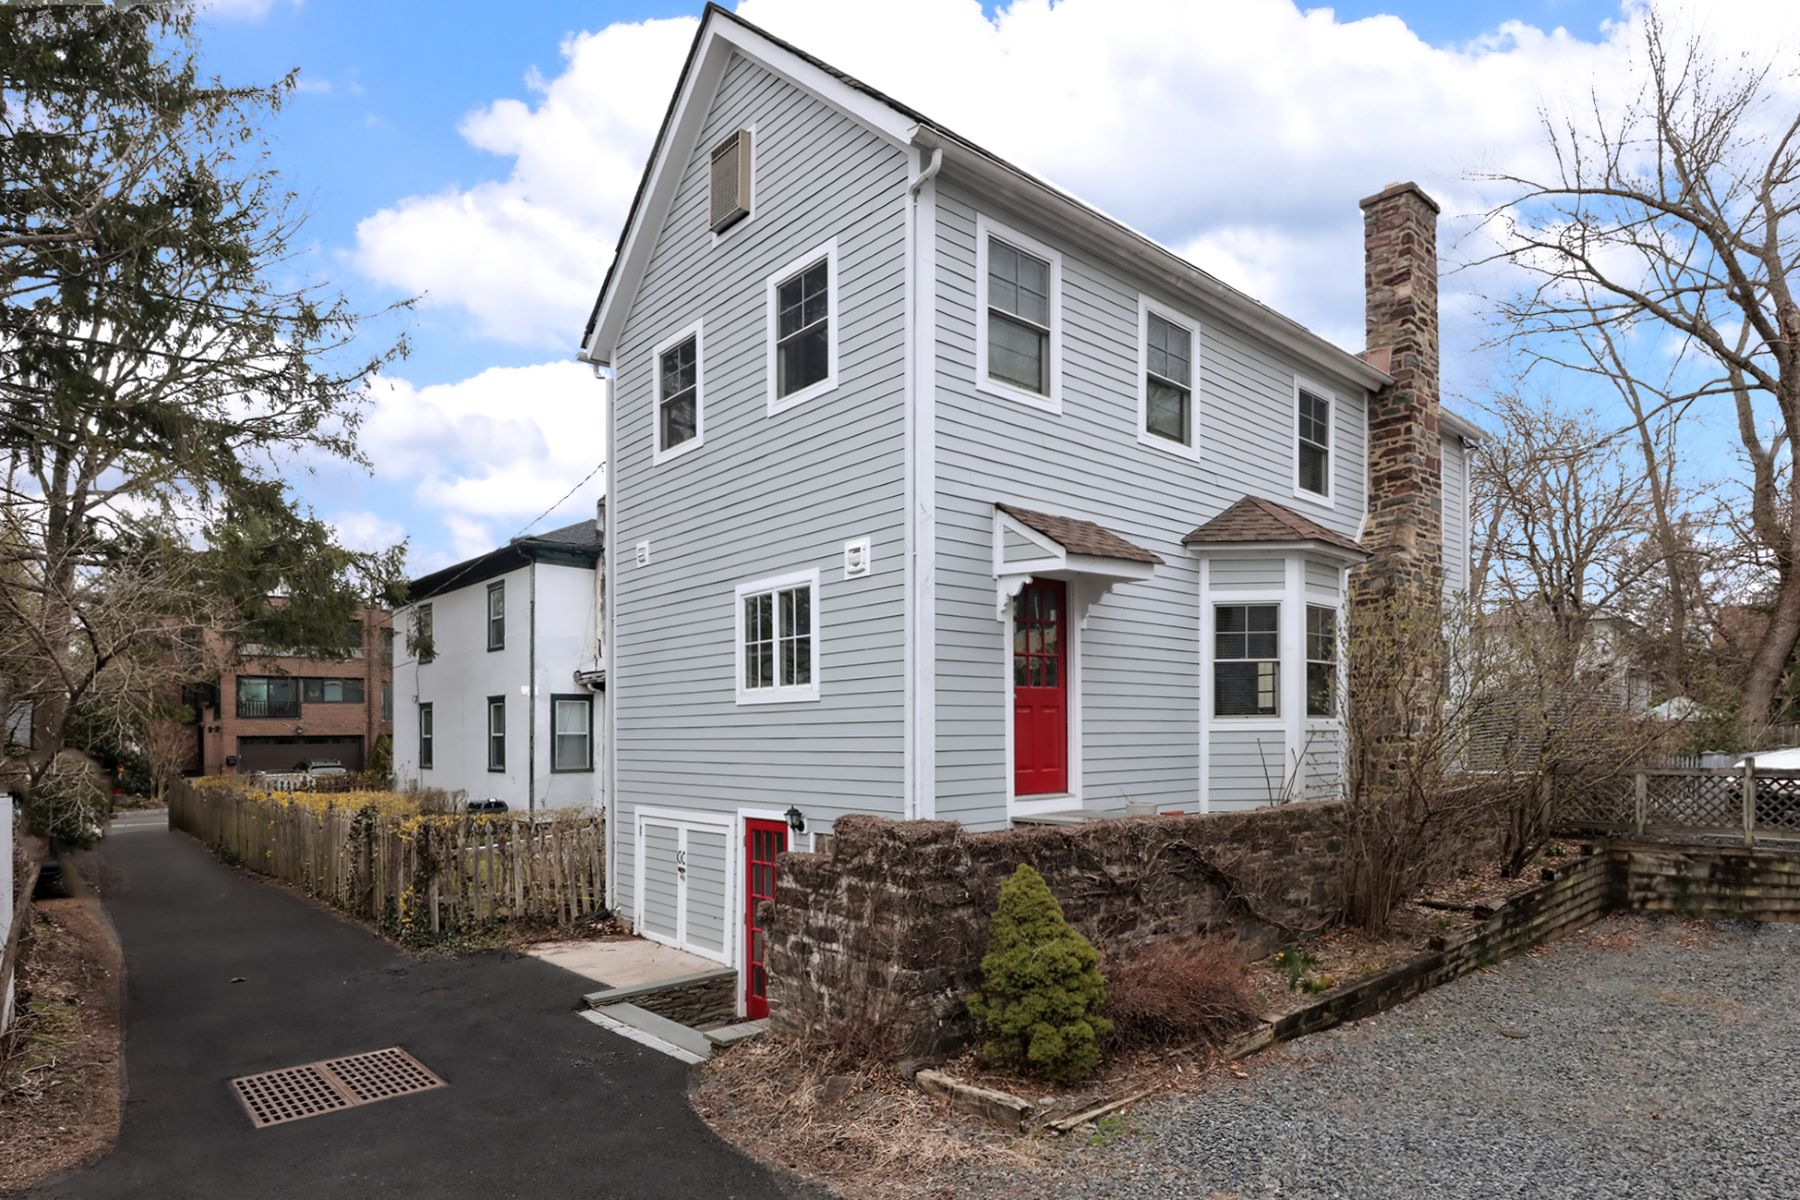 Property for Sale at Heart-of-Princeton Home Charms with Cottage Feel 42 Park Place, Princeton, New Jersey 08542 United States